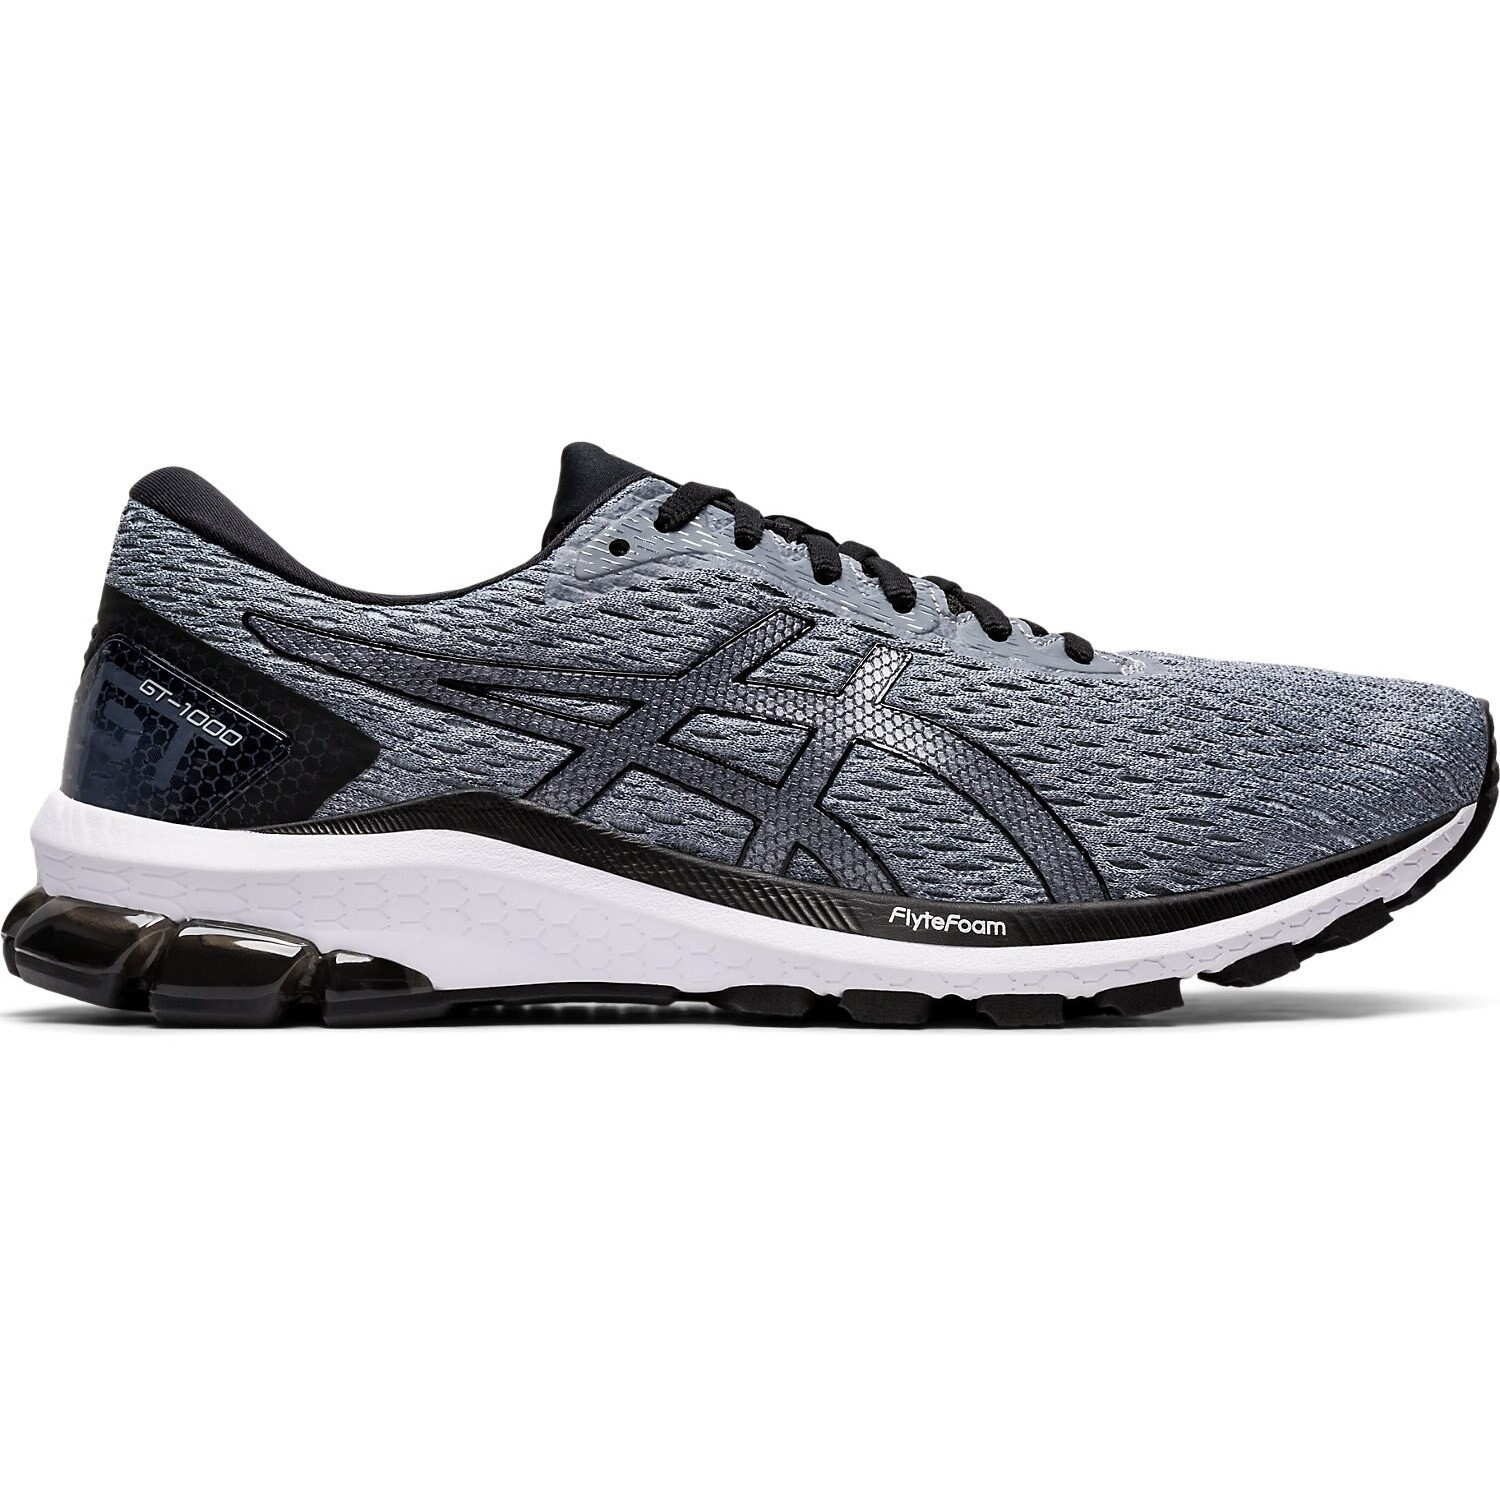 Asics Womens GT-1000 9 Running Shoes Trainers Sneakers Grey Sports Breathable